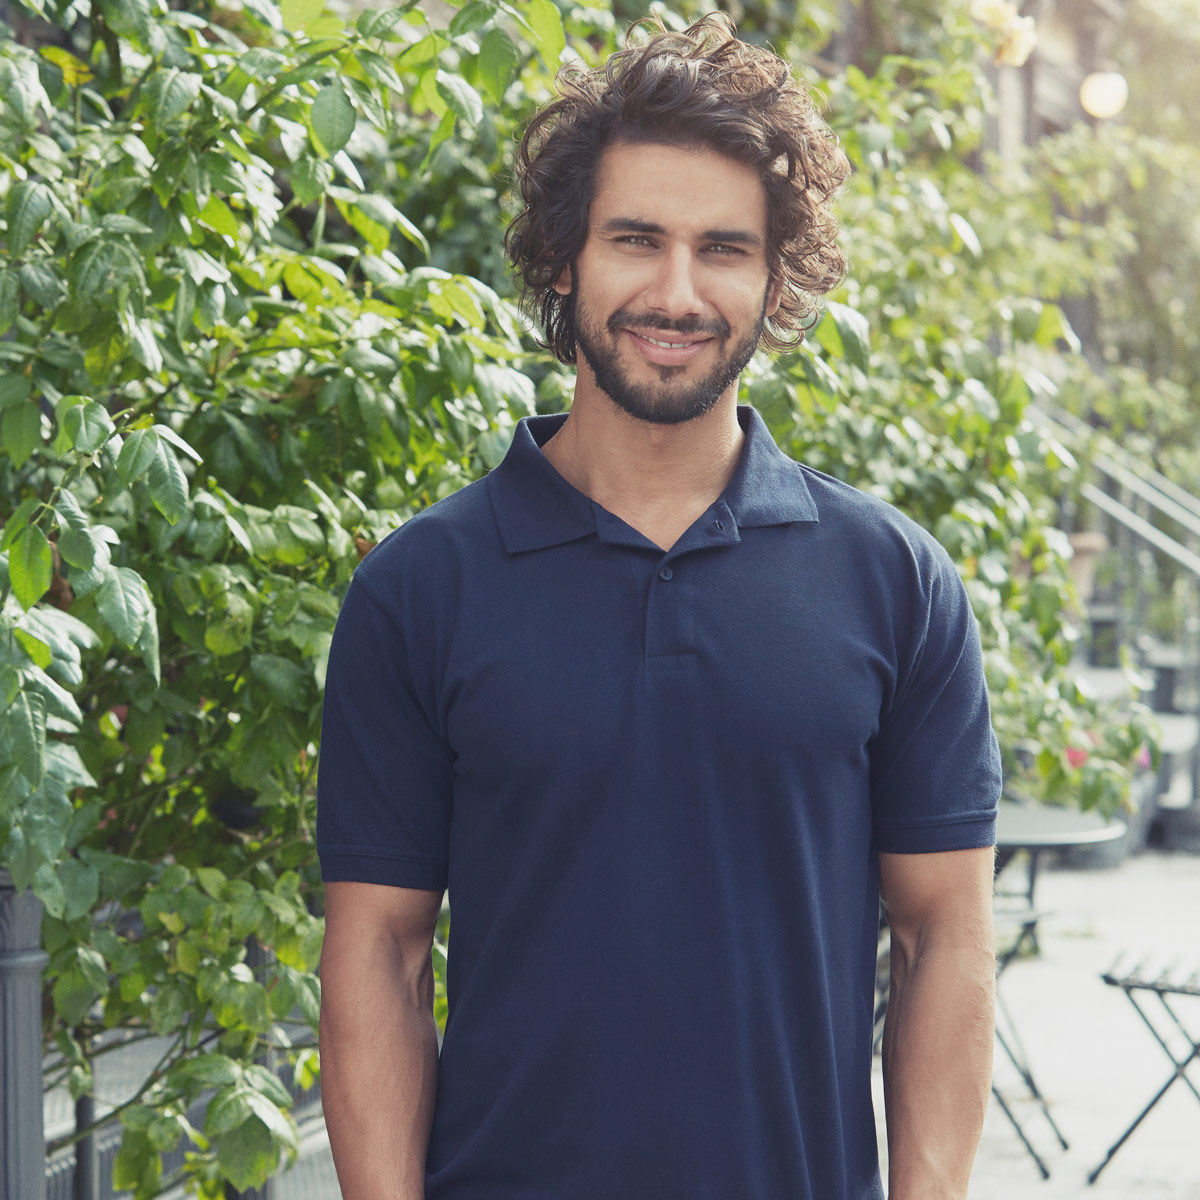 Polo-classic-men-navy-gitz-apperal-O20080